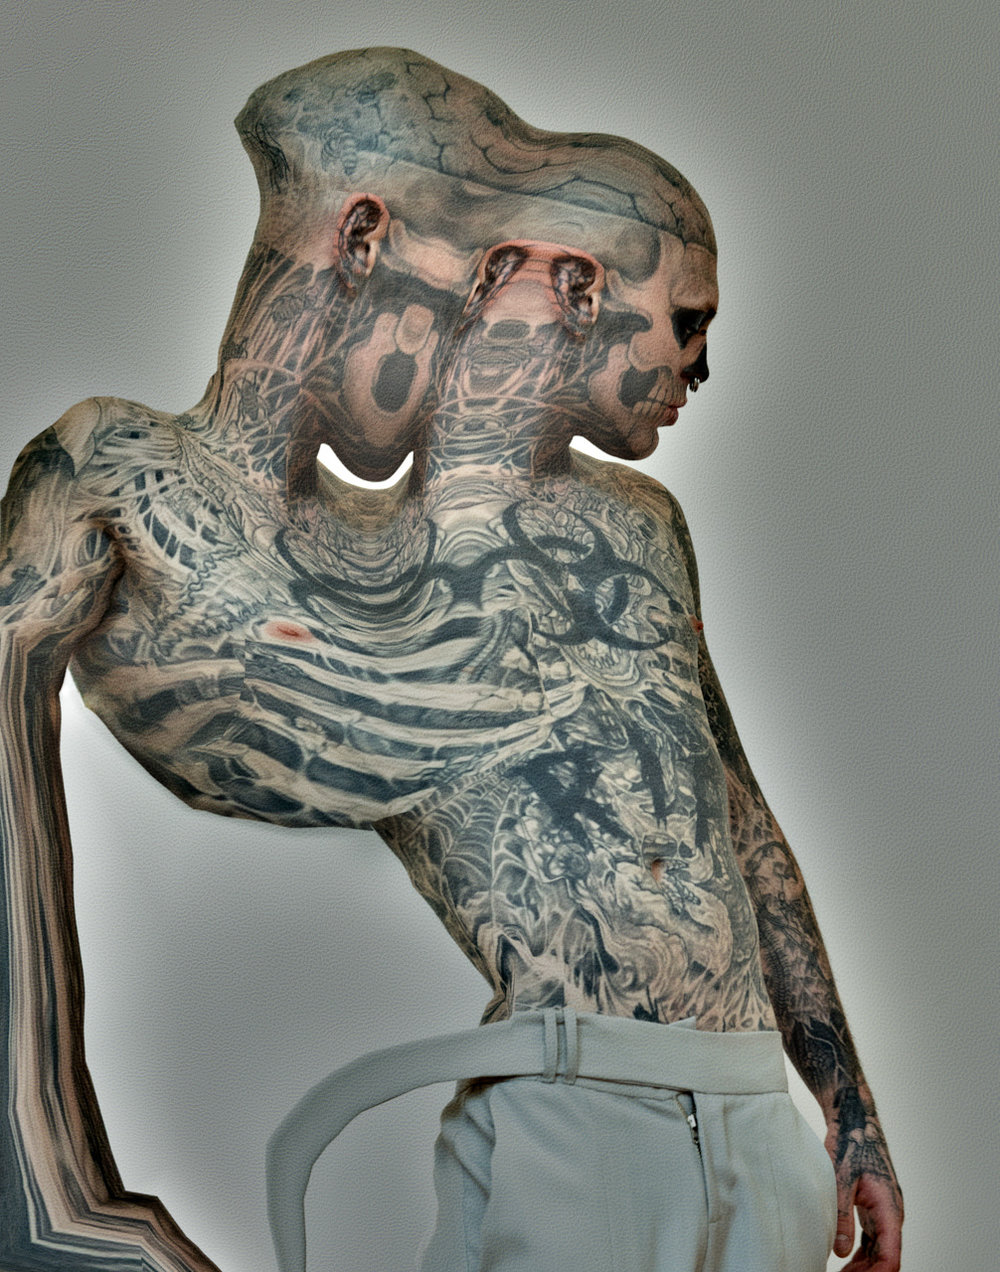 Zombie Boy warp skin Fashion Image by photographer Nelson Huang artist Justin Atkins.JPG.JPG